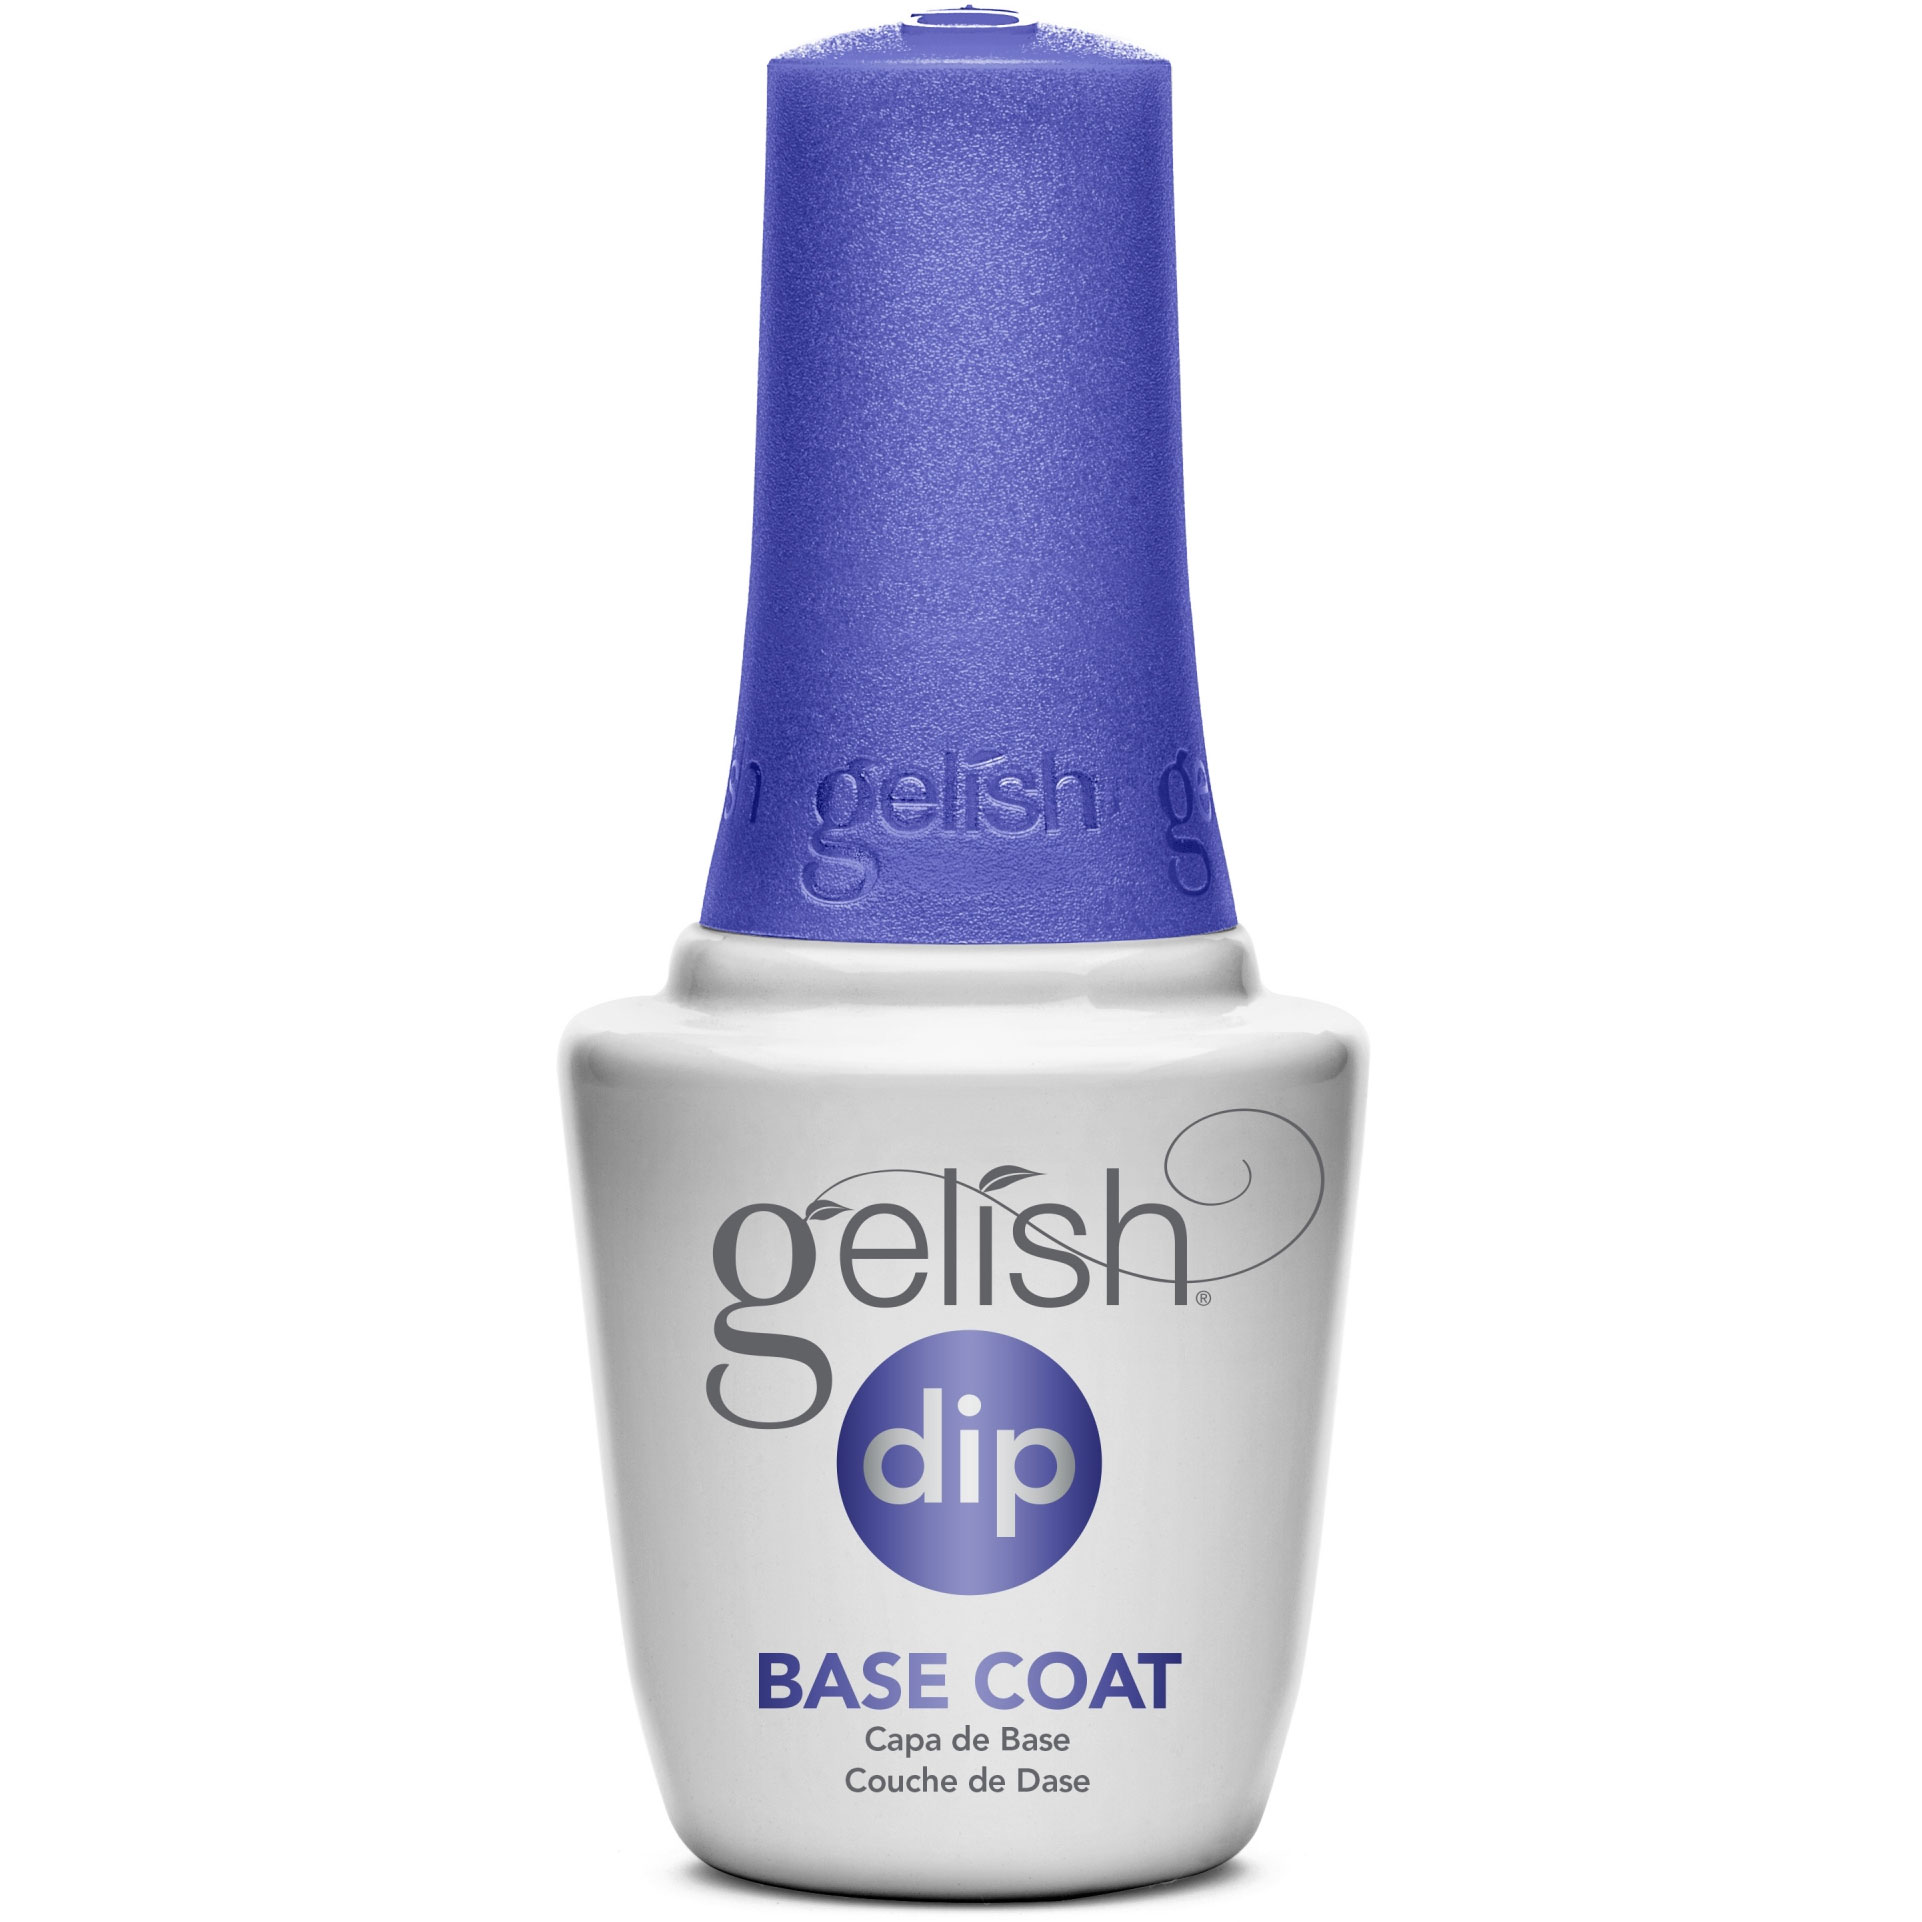 Nail Dip Powder Non Acrylic: Gelish Soak Off Basix Acrylic Powder Nail Polish Dip